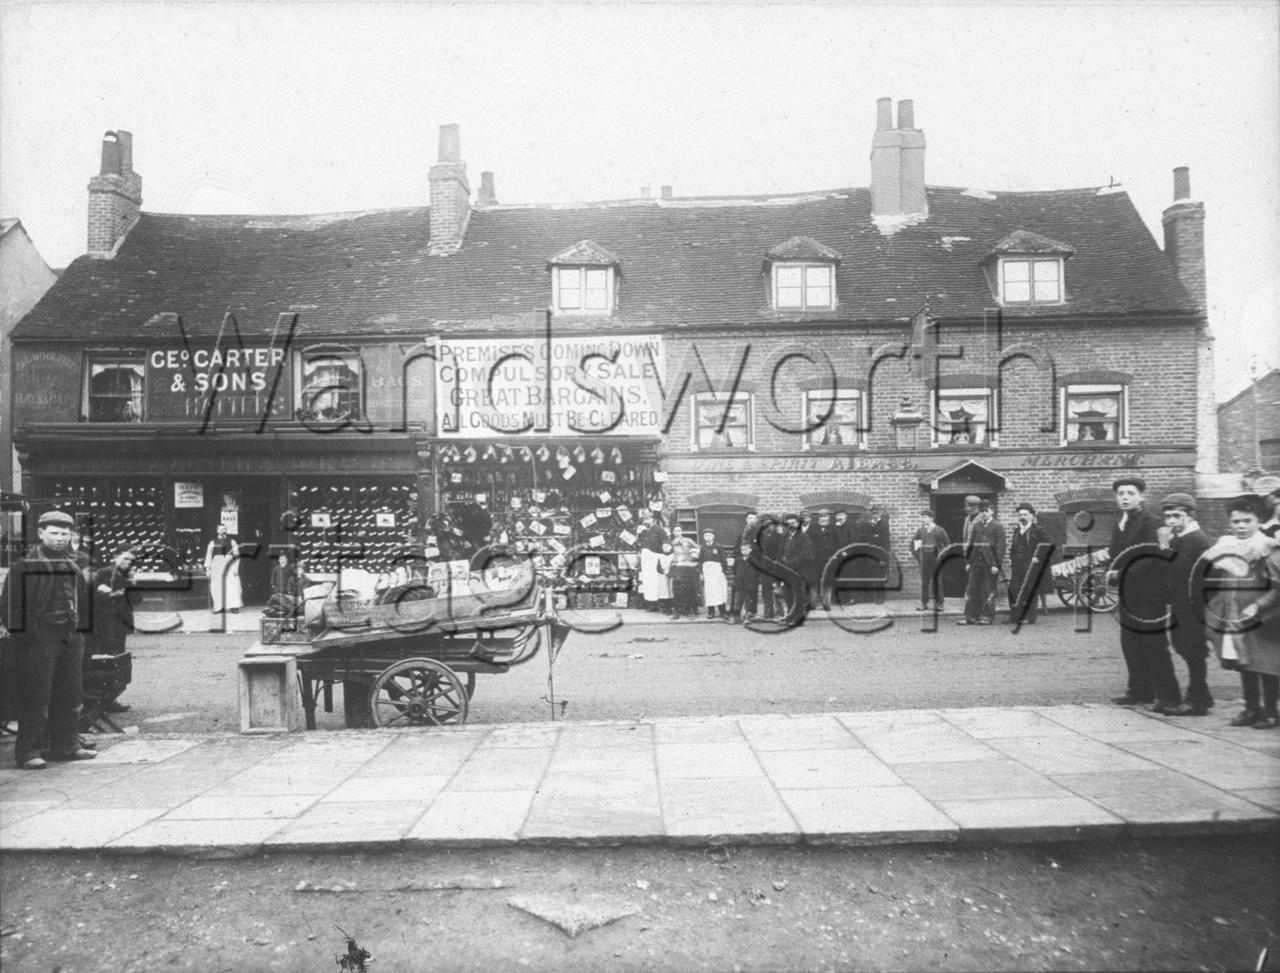 Unique Search Results  Wandsworth Borough Photos  Page  With Remarkable Old Bull Inn Wandsworth High Street  C With Endearing Garden Table Parasol Also Scribbler Covent Garden In Addition Bricks For Garden Wall And Stones For Garden As Well As Kenrokuen Garden Additionally Solar Garden Lights From Boroughphotosorg With   Endearing Search Results  Wandsworth Borough Photos  Page  With Unique Stones For Garden As Well As Kenrokuen Garden Additionally Solar Garden Lights And Remarkable Old Bull Inn Wandsworth High Street  C Via Boroughphotosorg